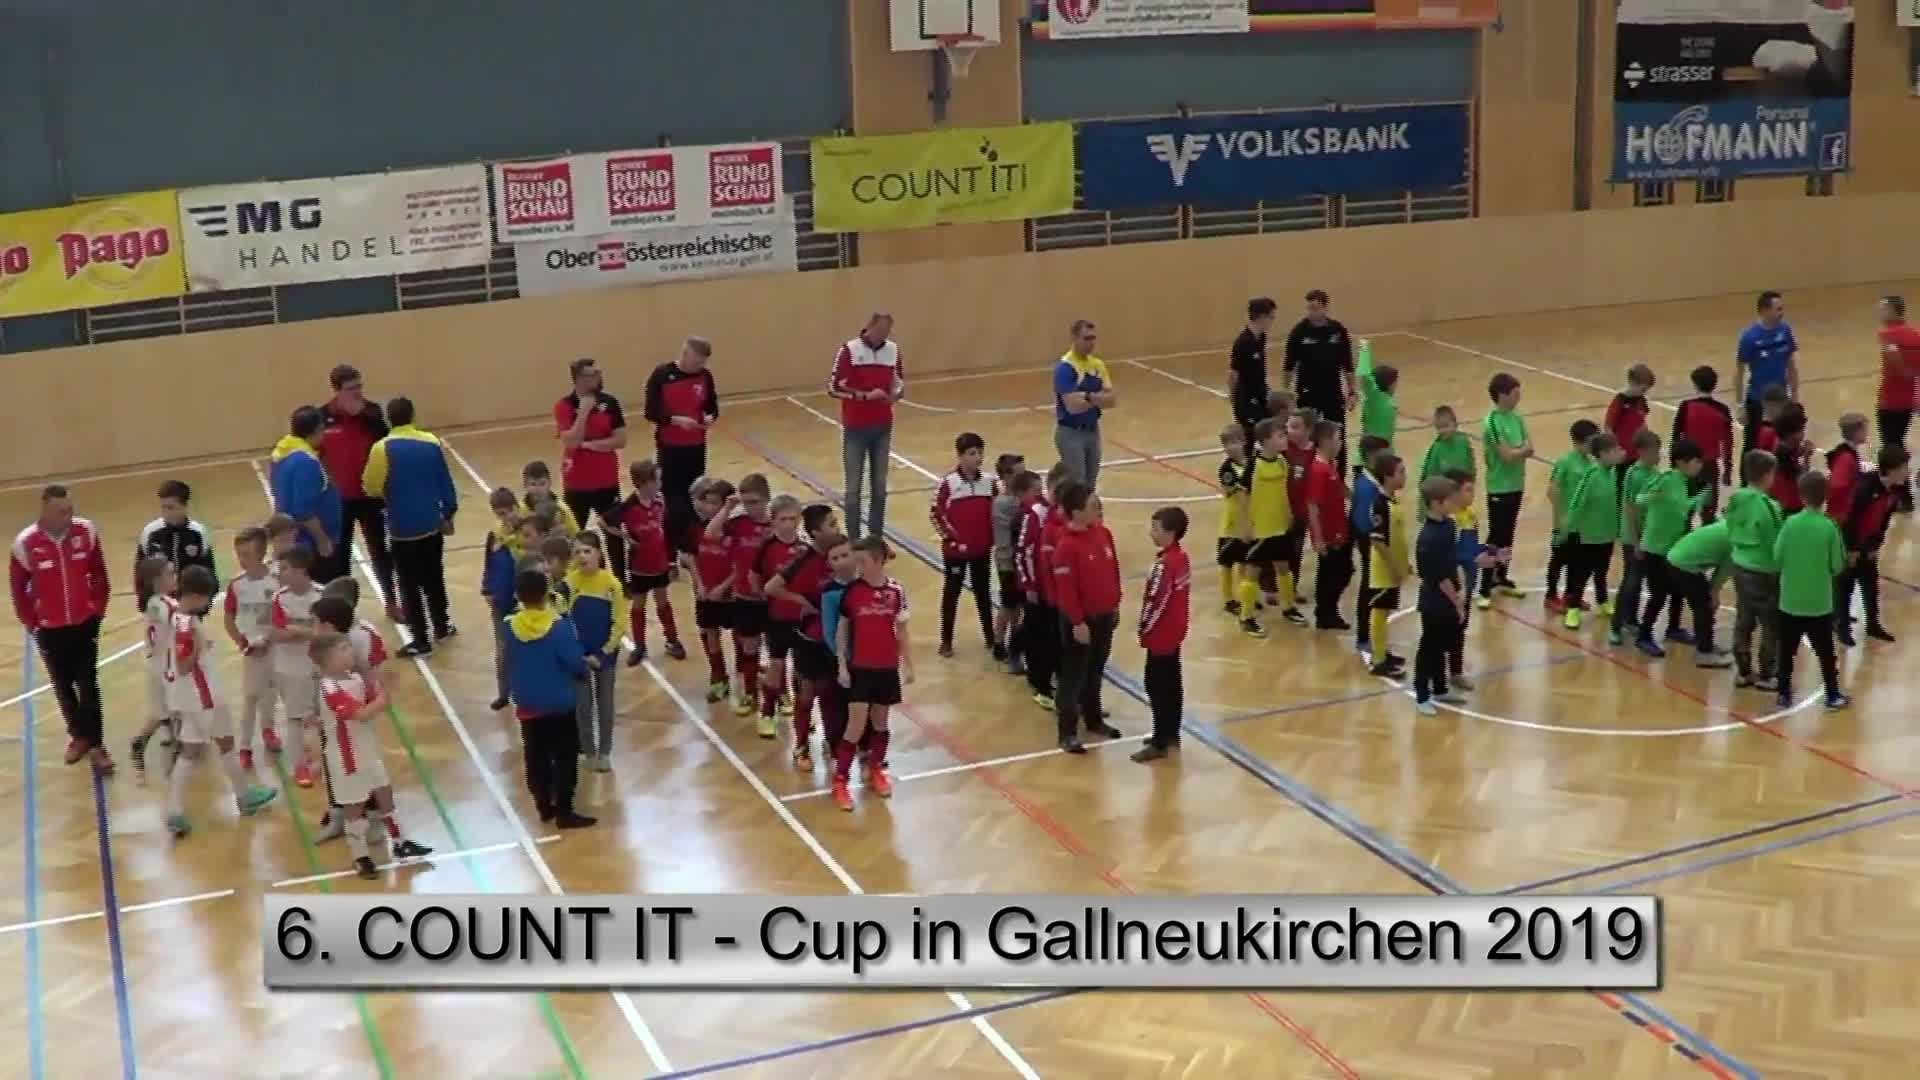 COUNT IT Cup in Gallneukirchen 2019